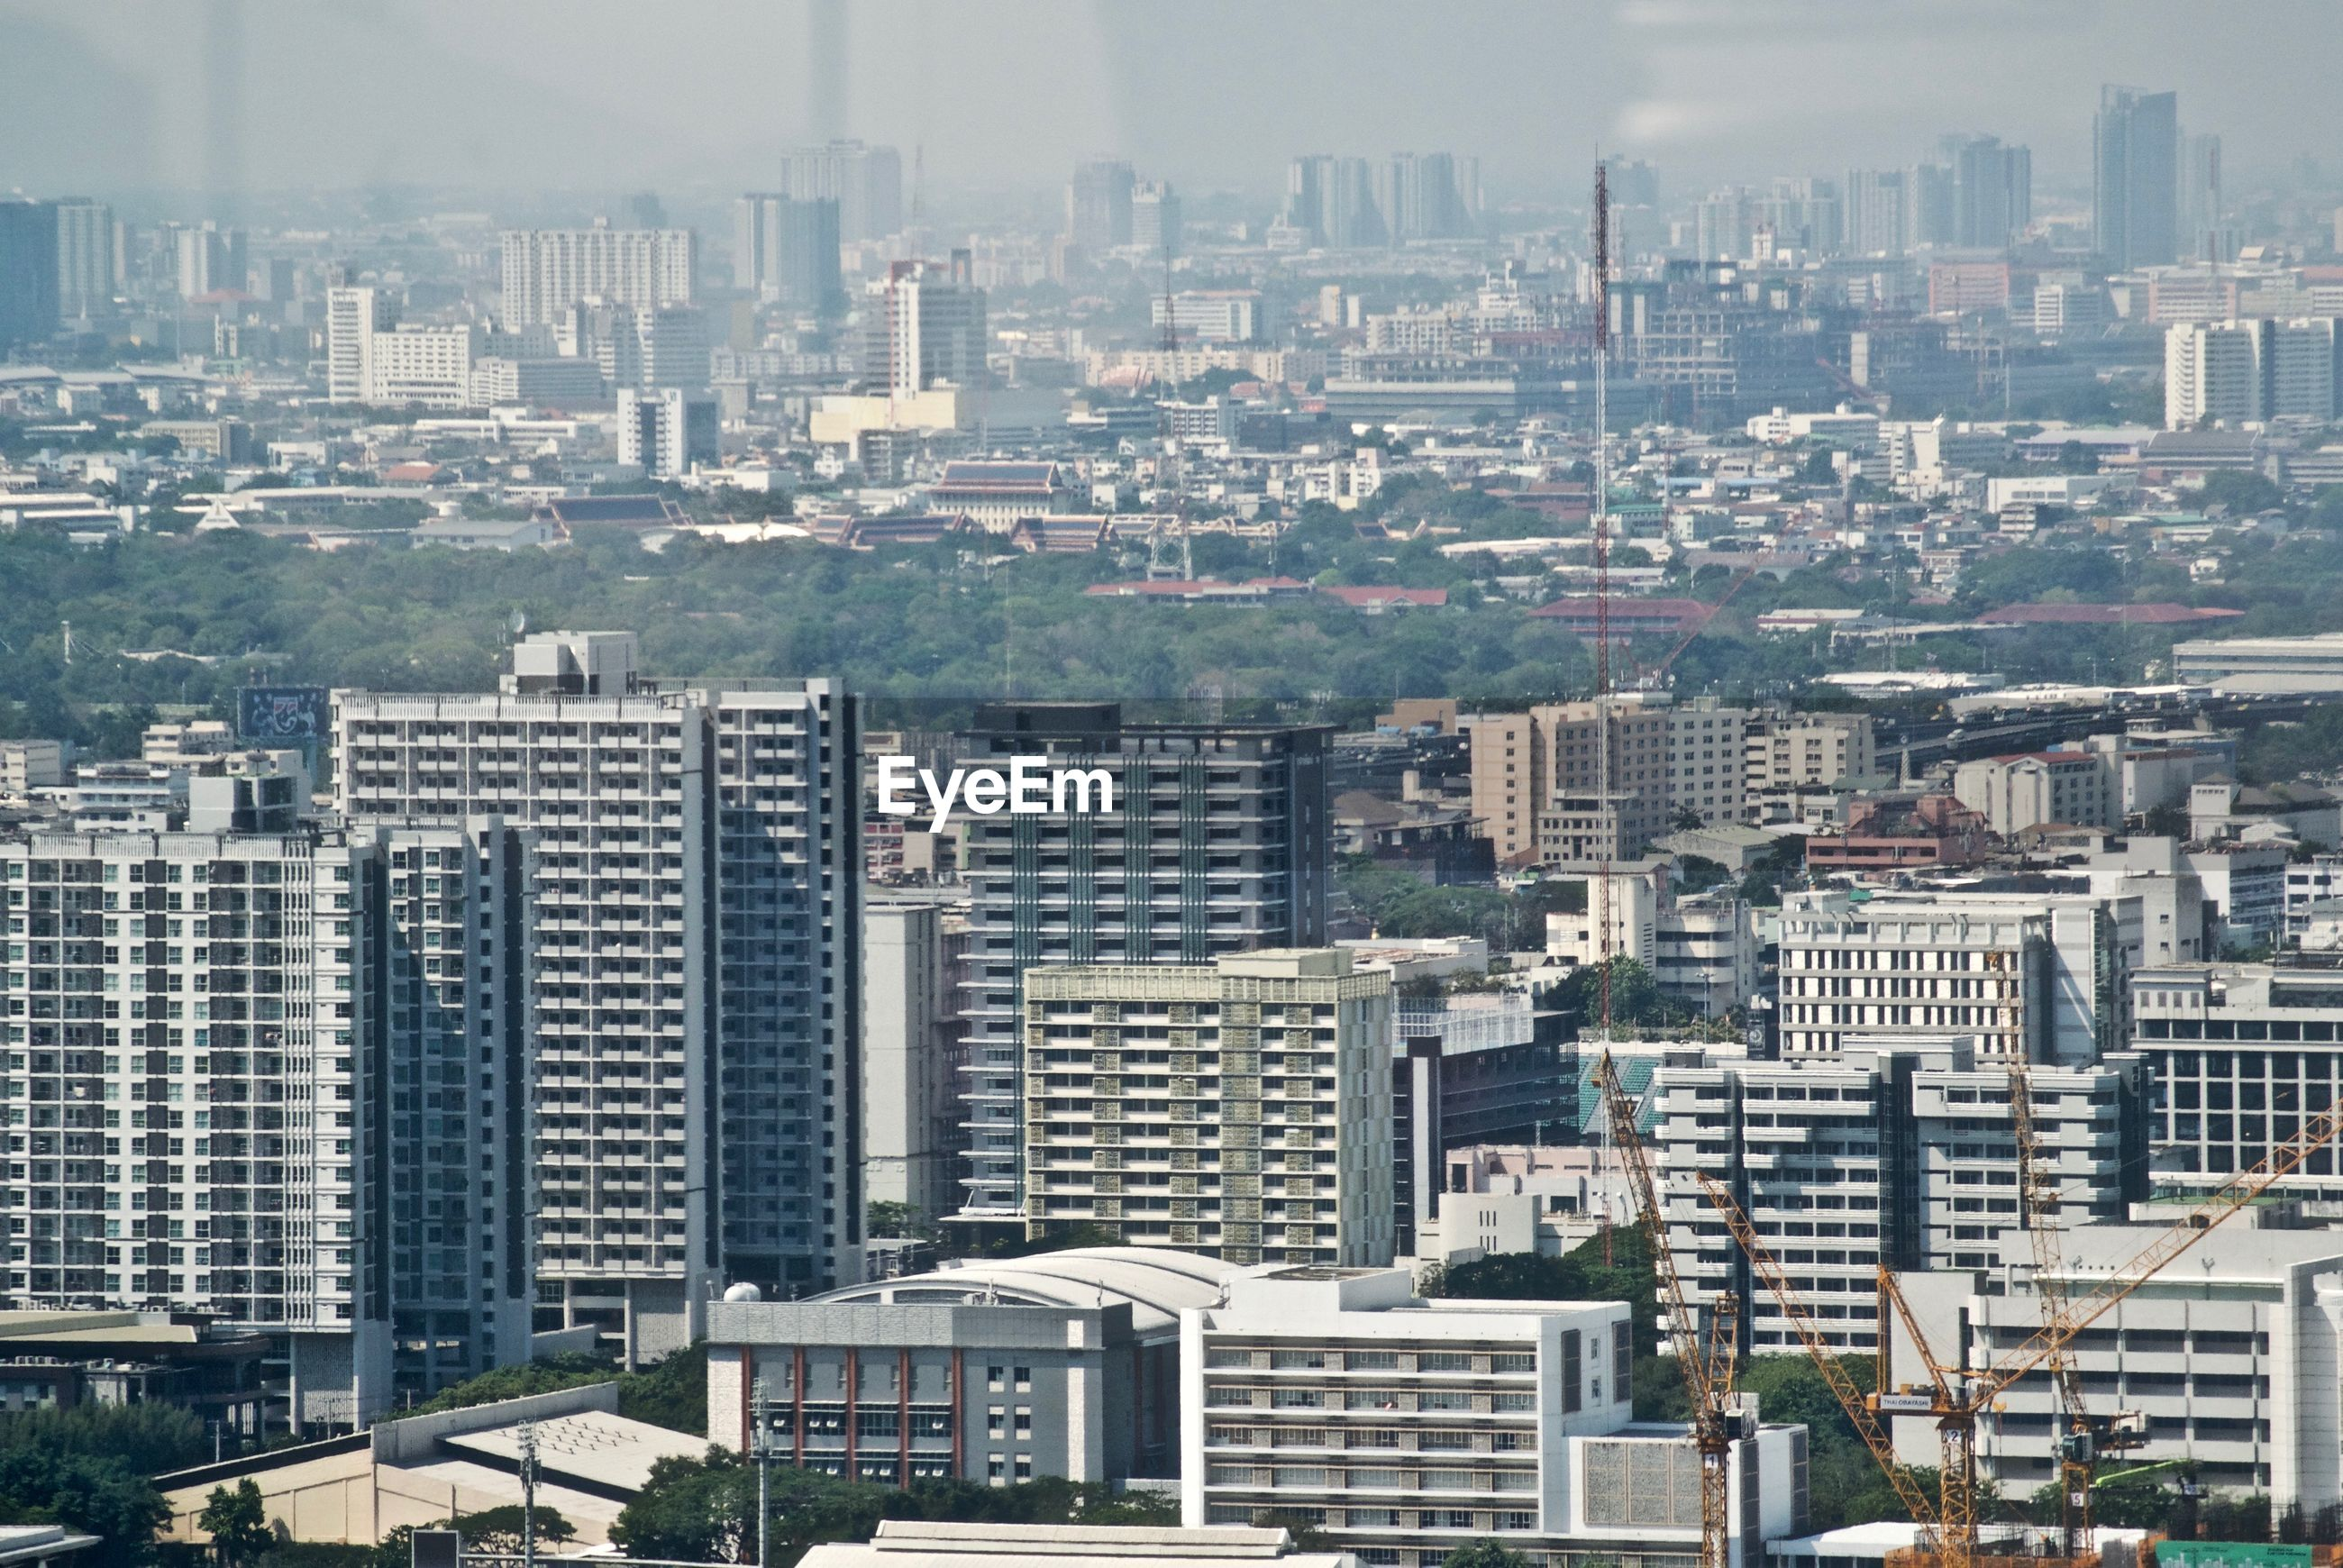 VIEW OF CITYSCAPE